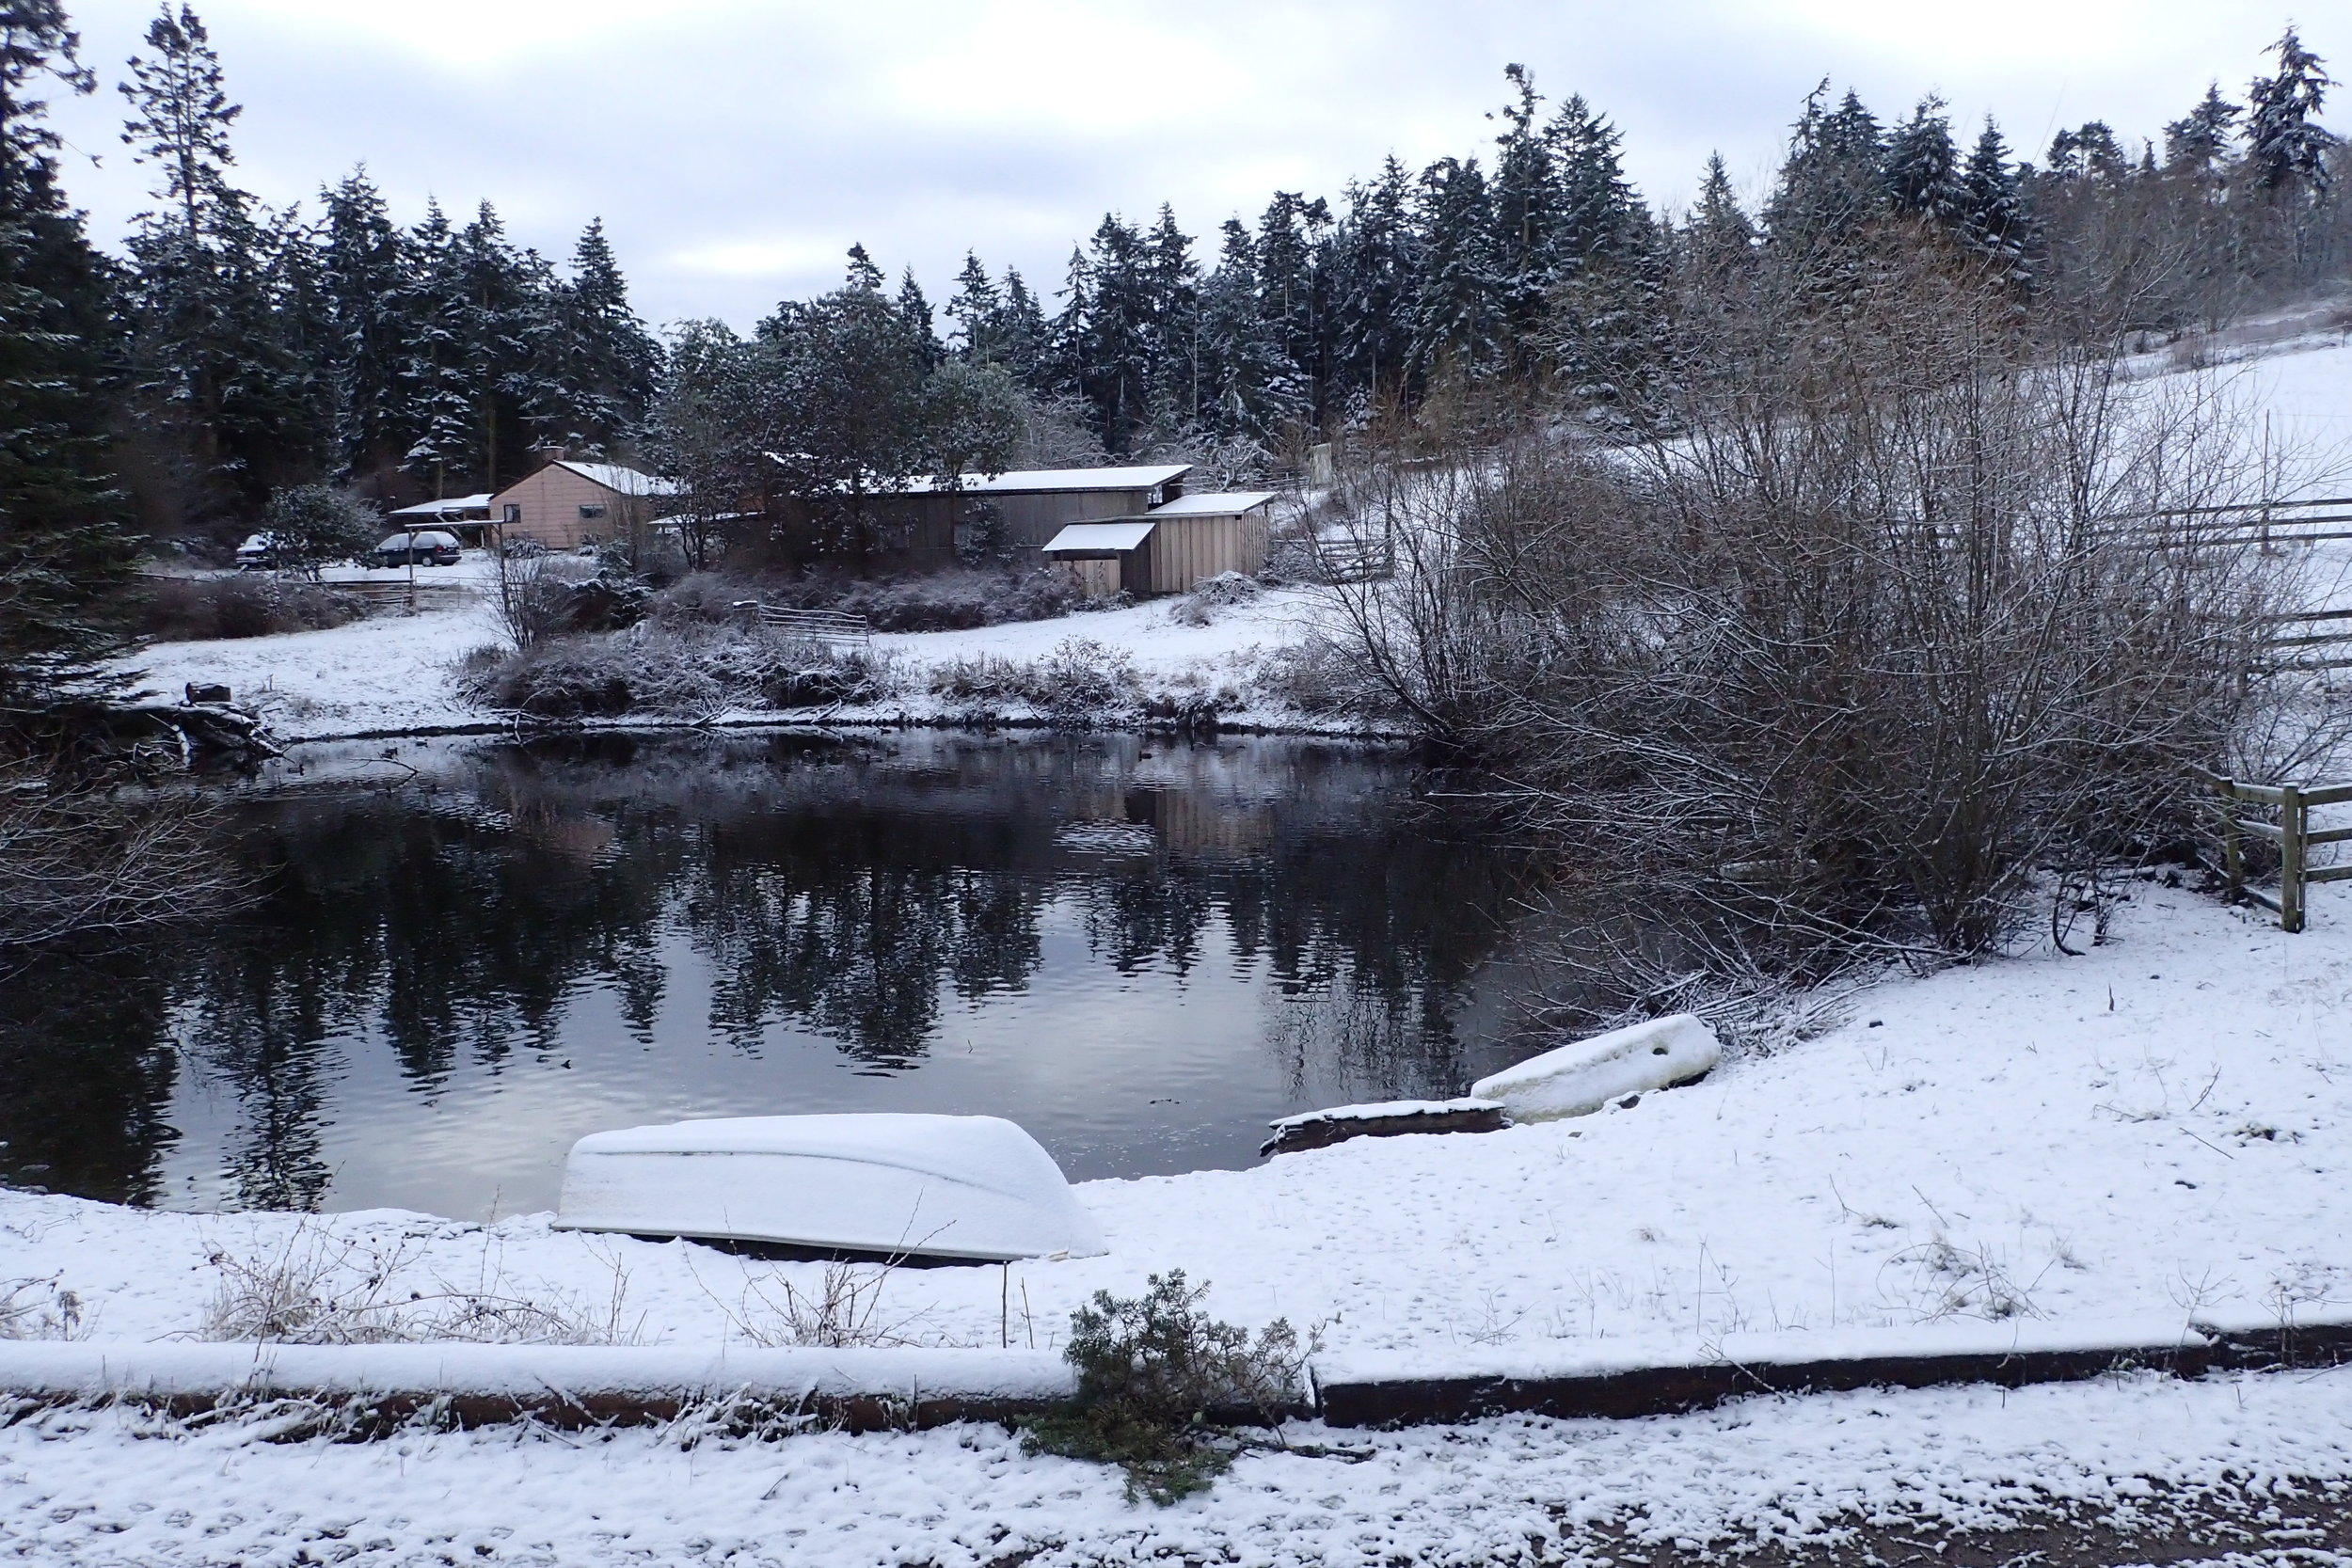 Northwest Winter